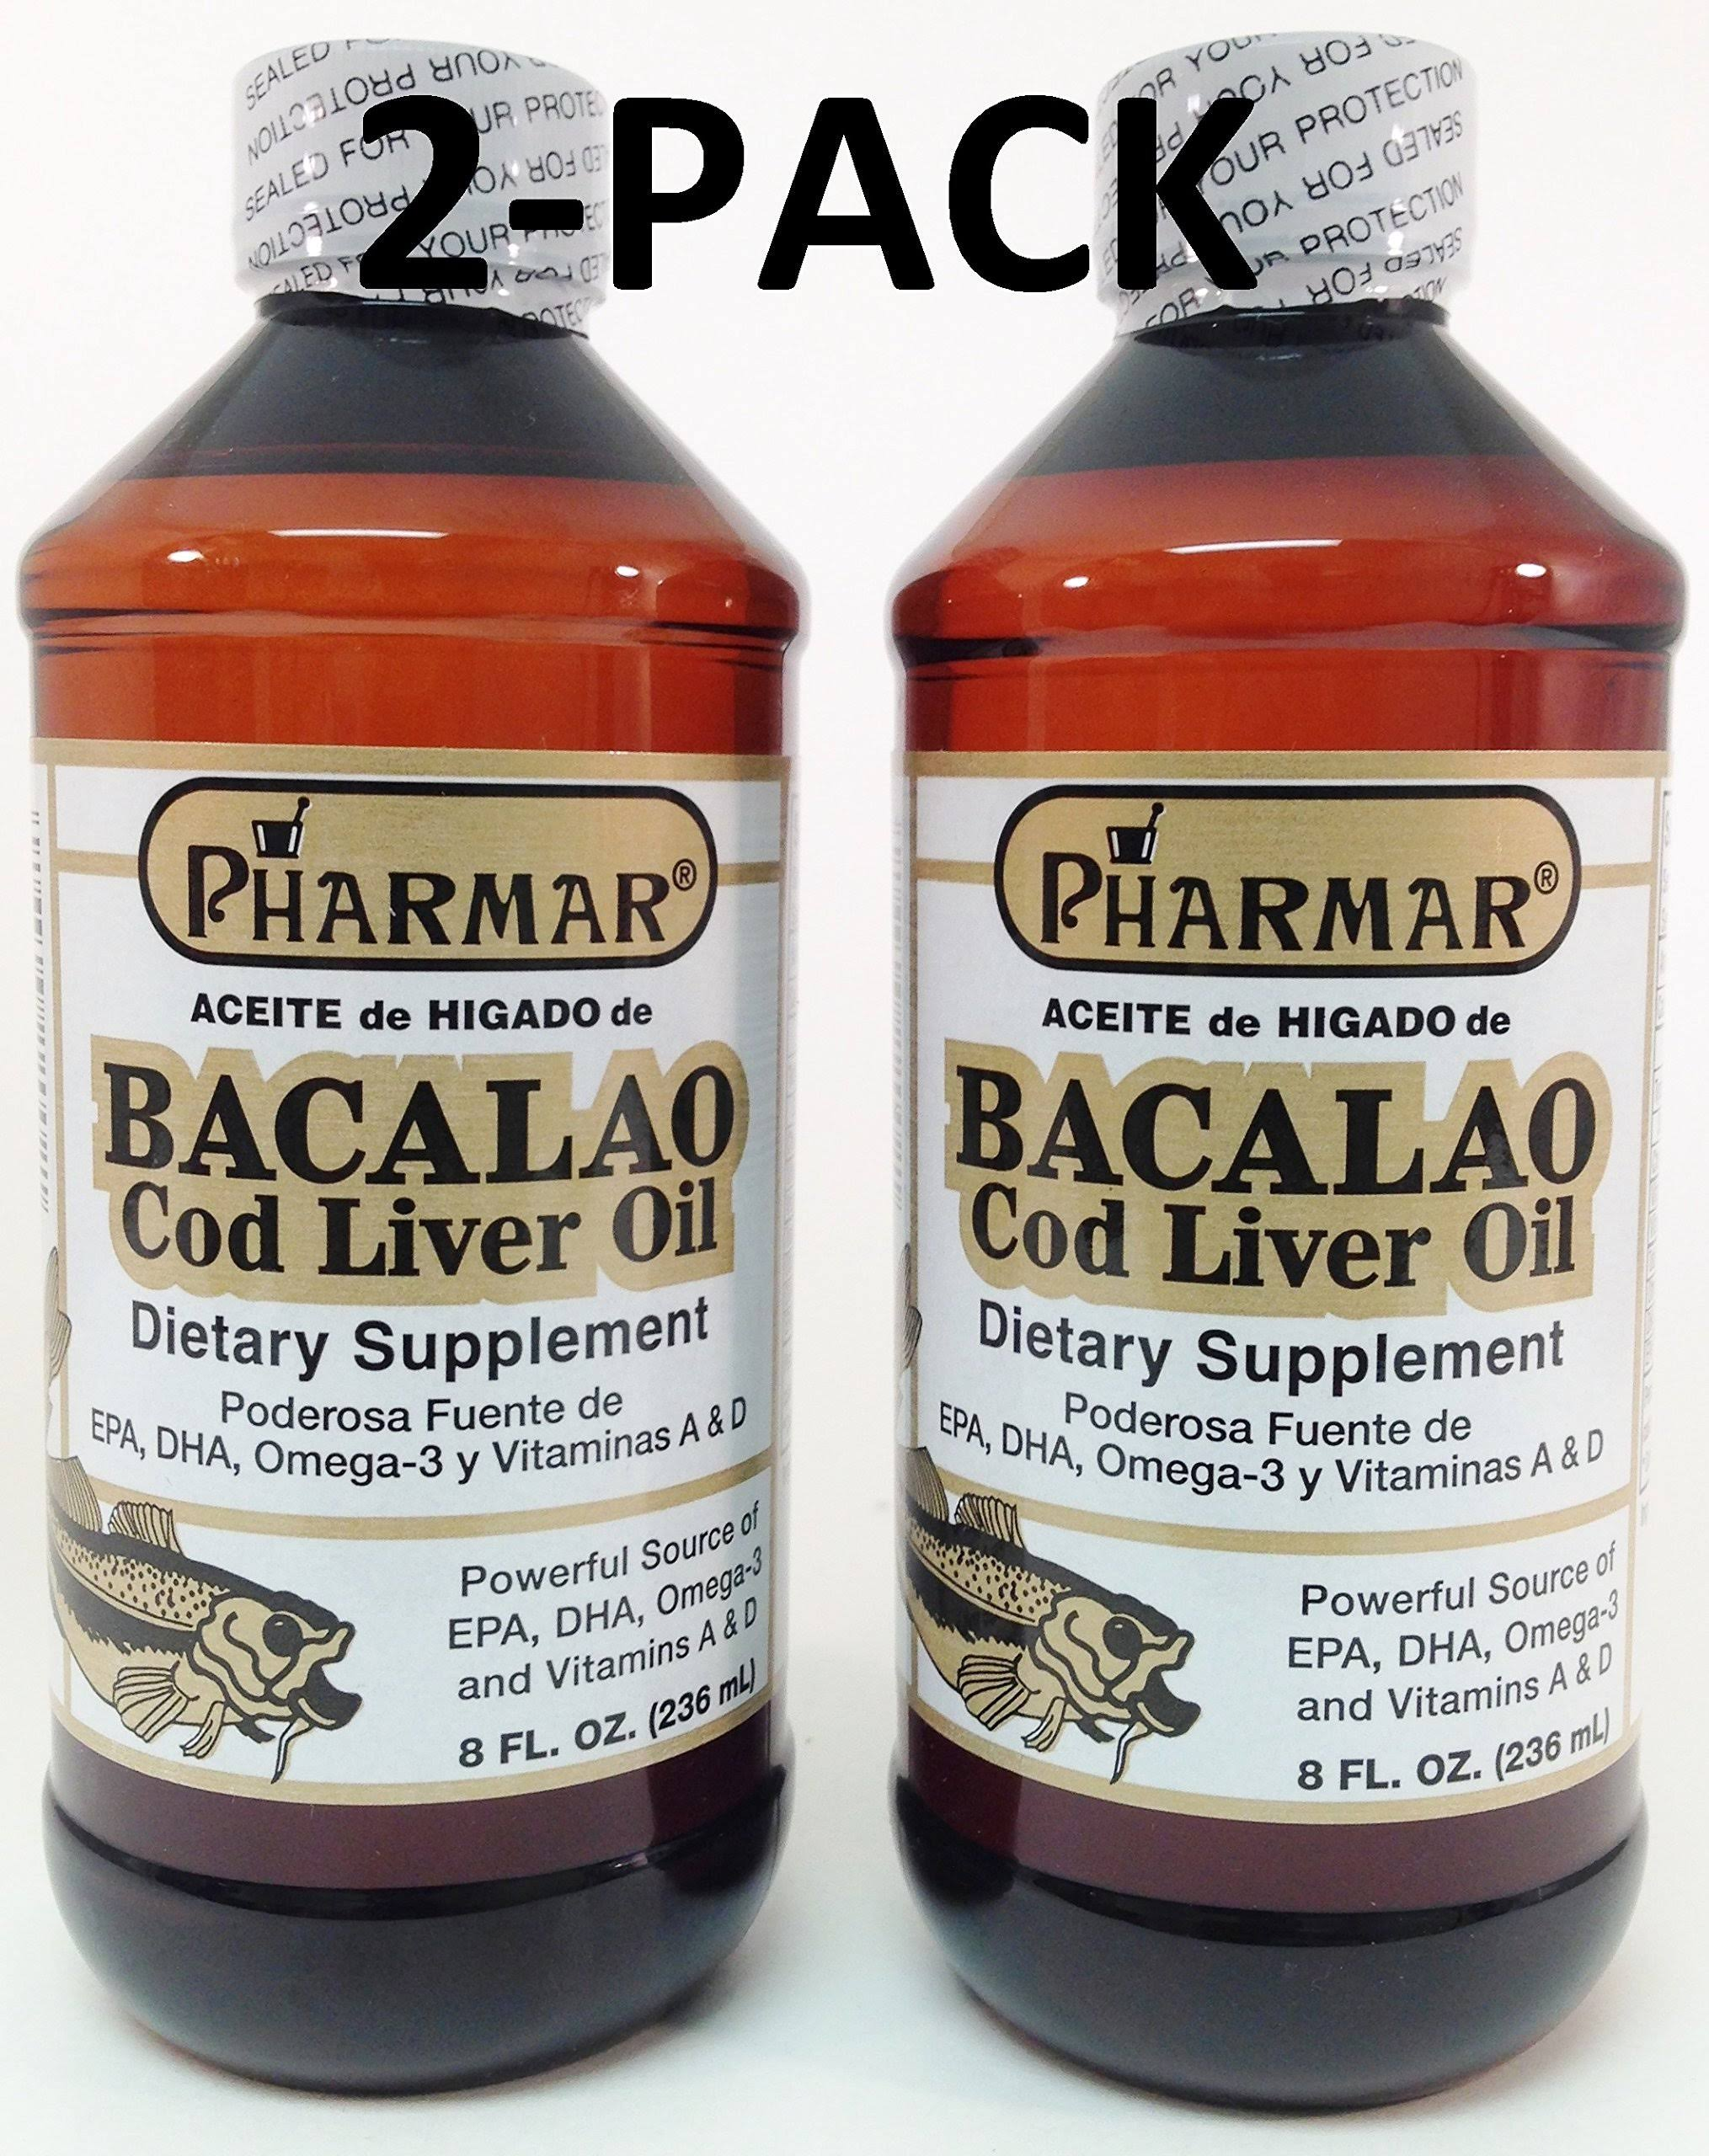 Aceite De Higado De Bacalao Cod Liver Oil Dietary Supplement - 8oz, 2pk